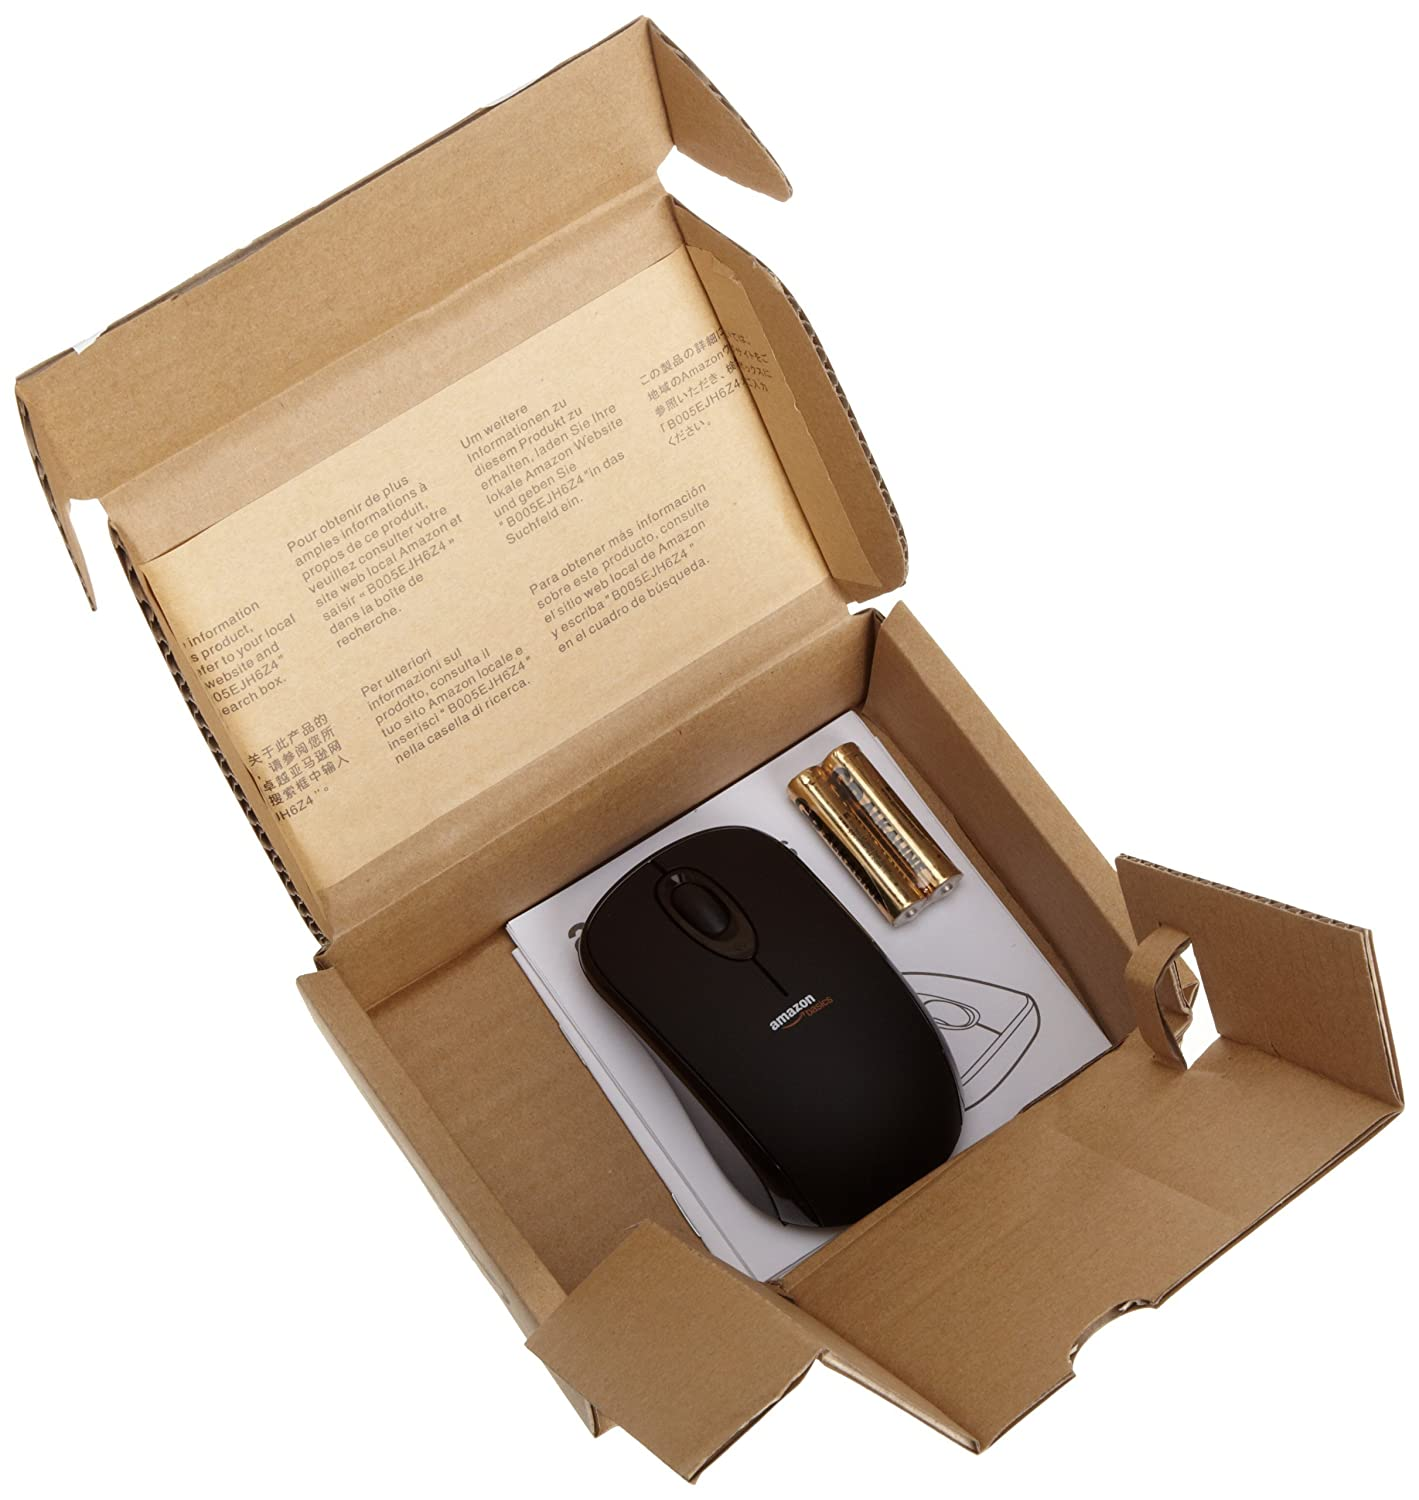 What's inside the box, Best mouse for laptop